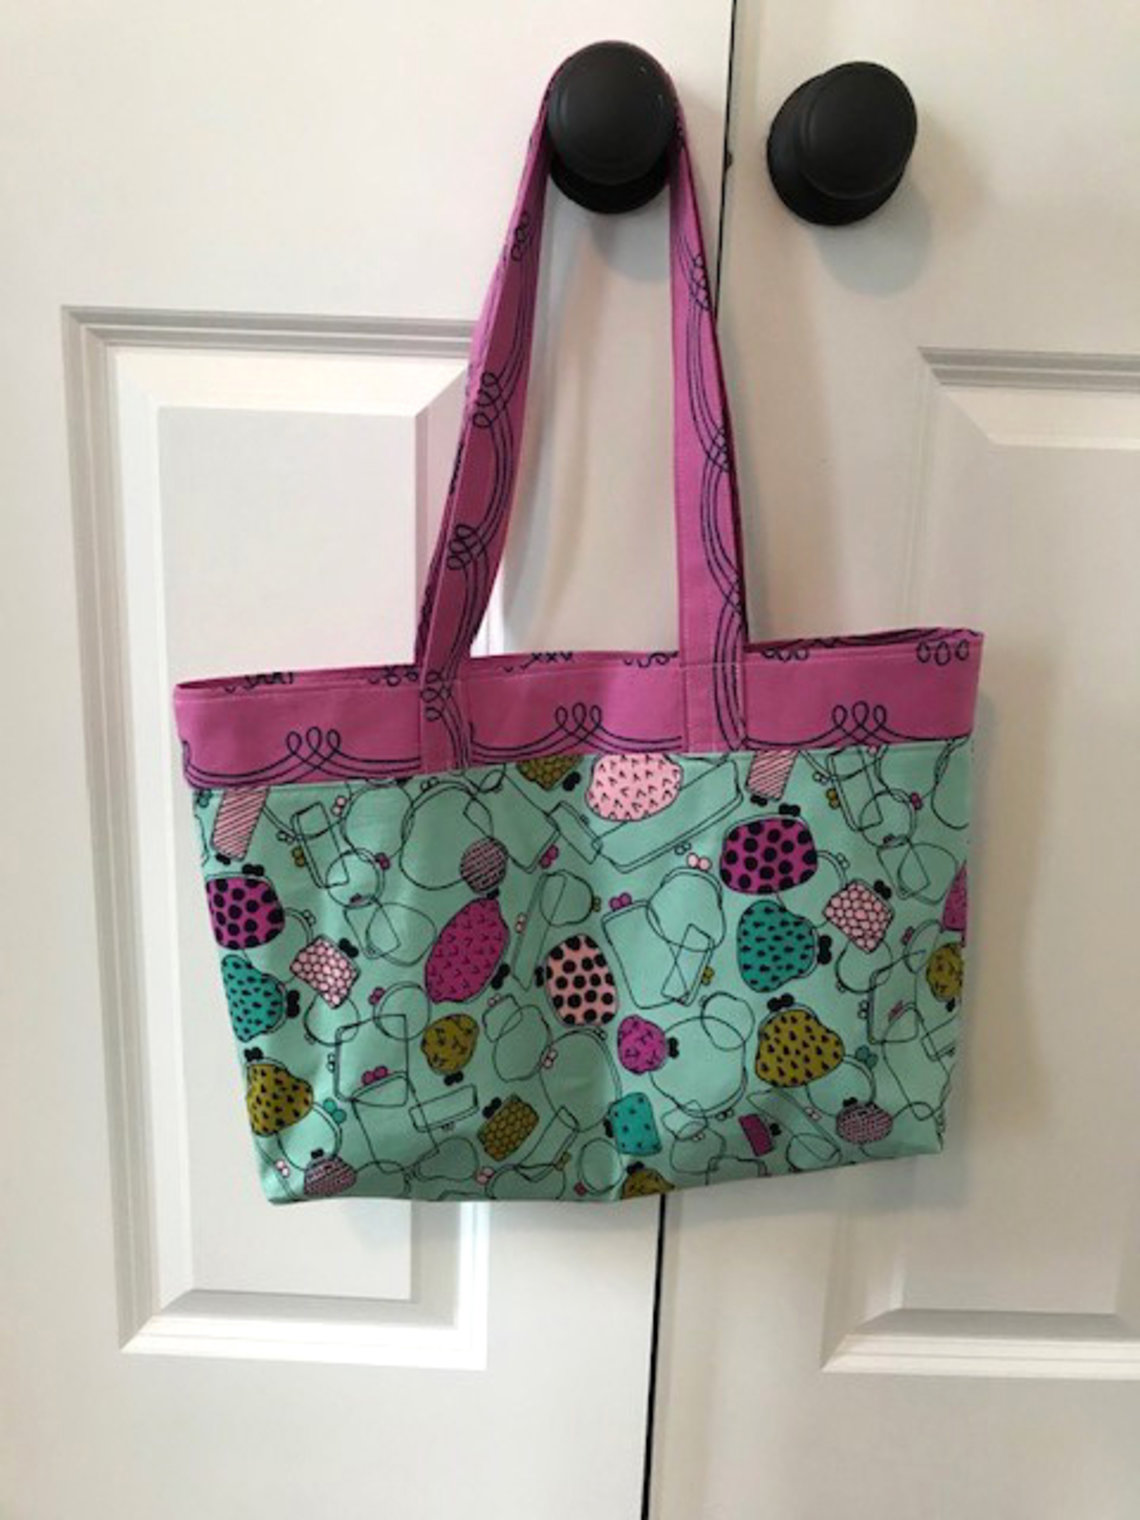 A purse with a pattern